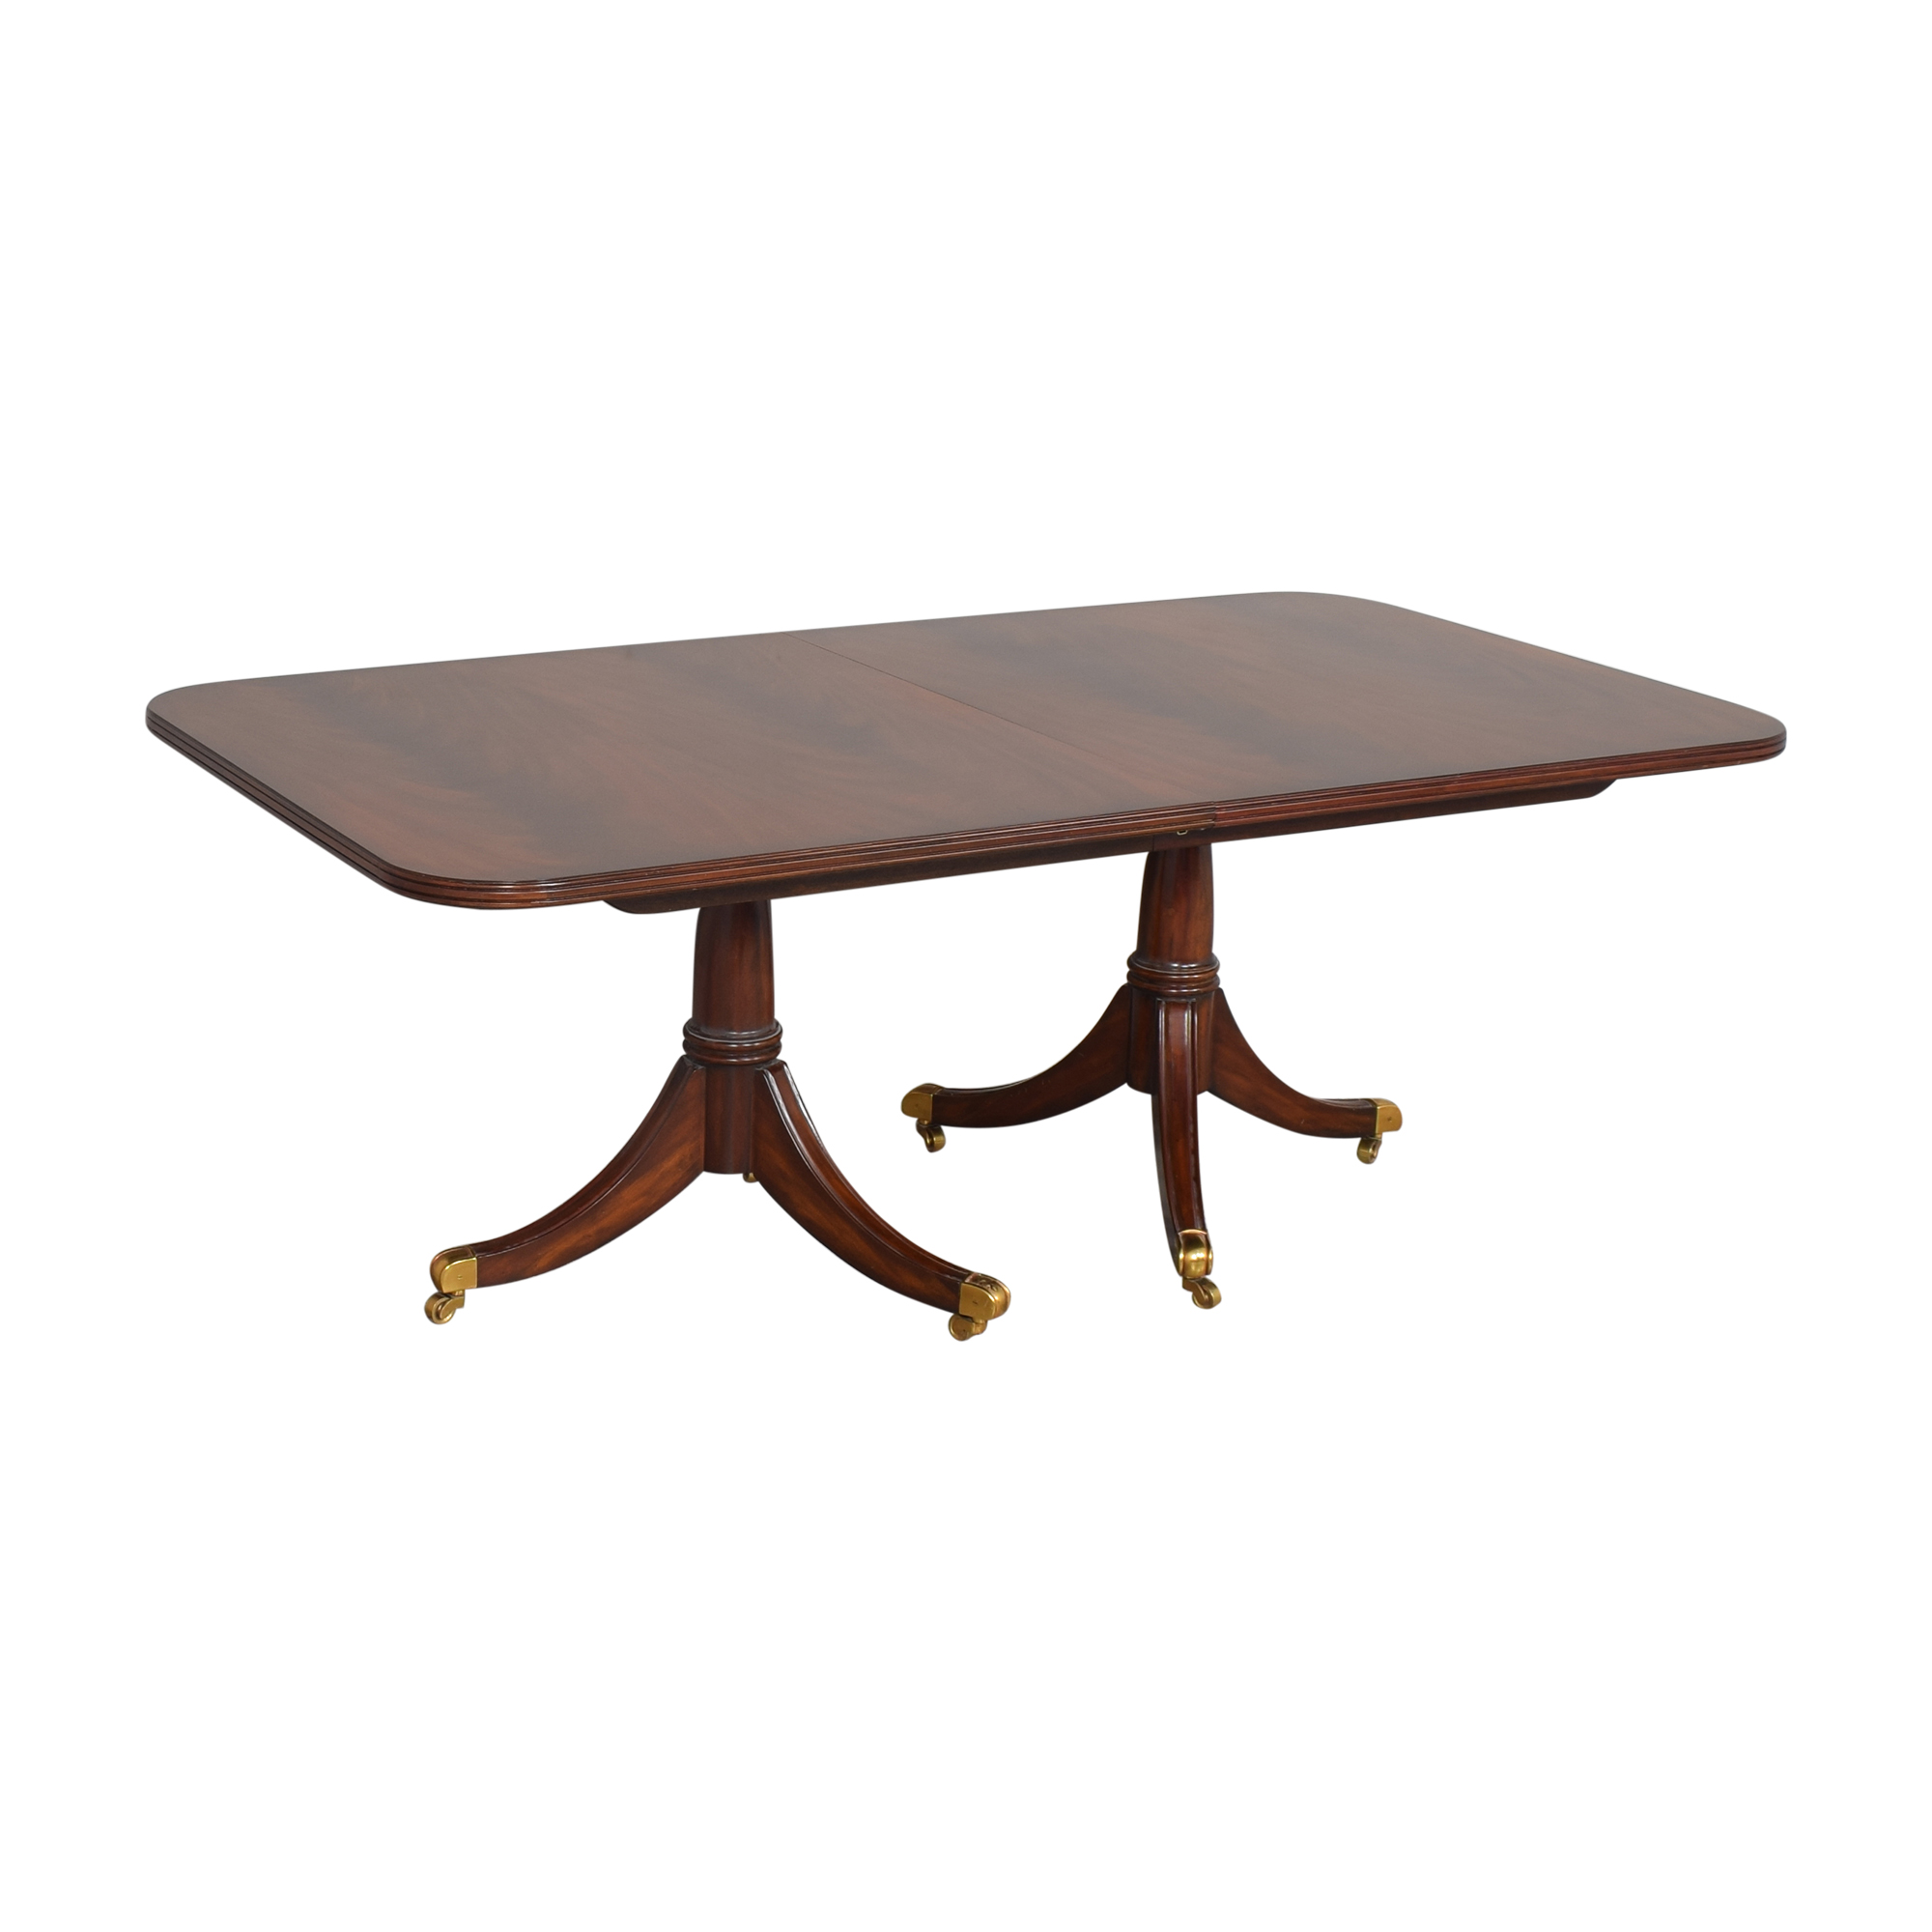 buy Maitland-Smith Double Pedestal Extendable Dining Table Maitland-Smith